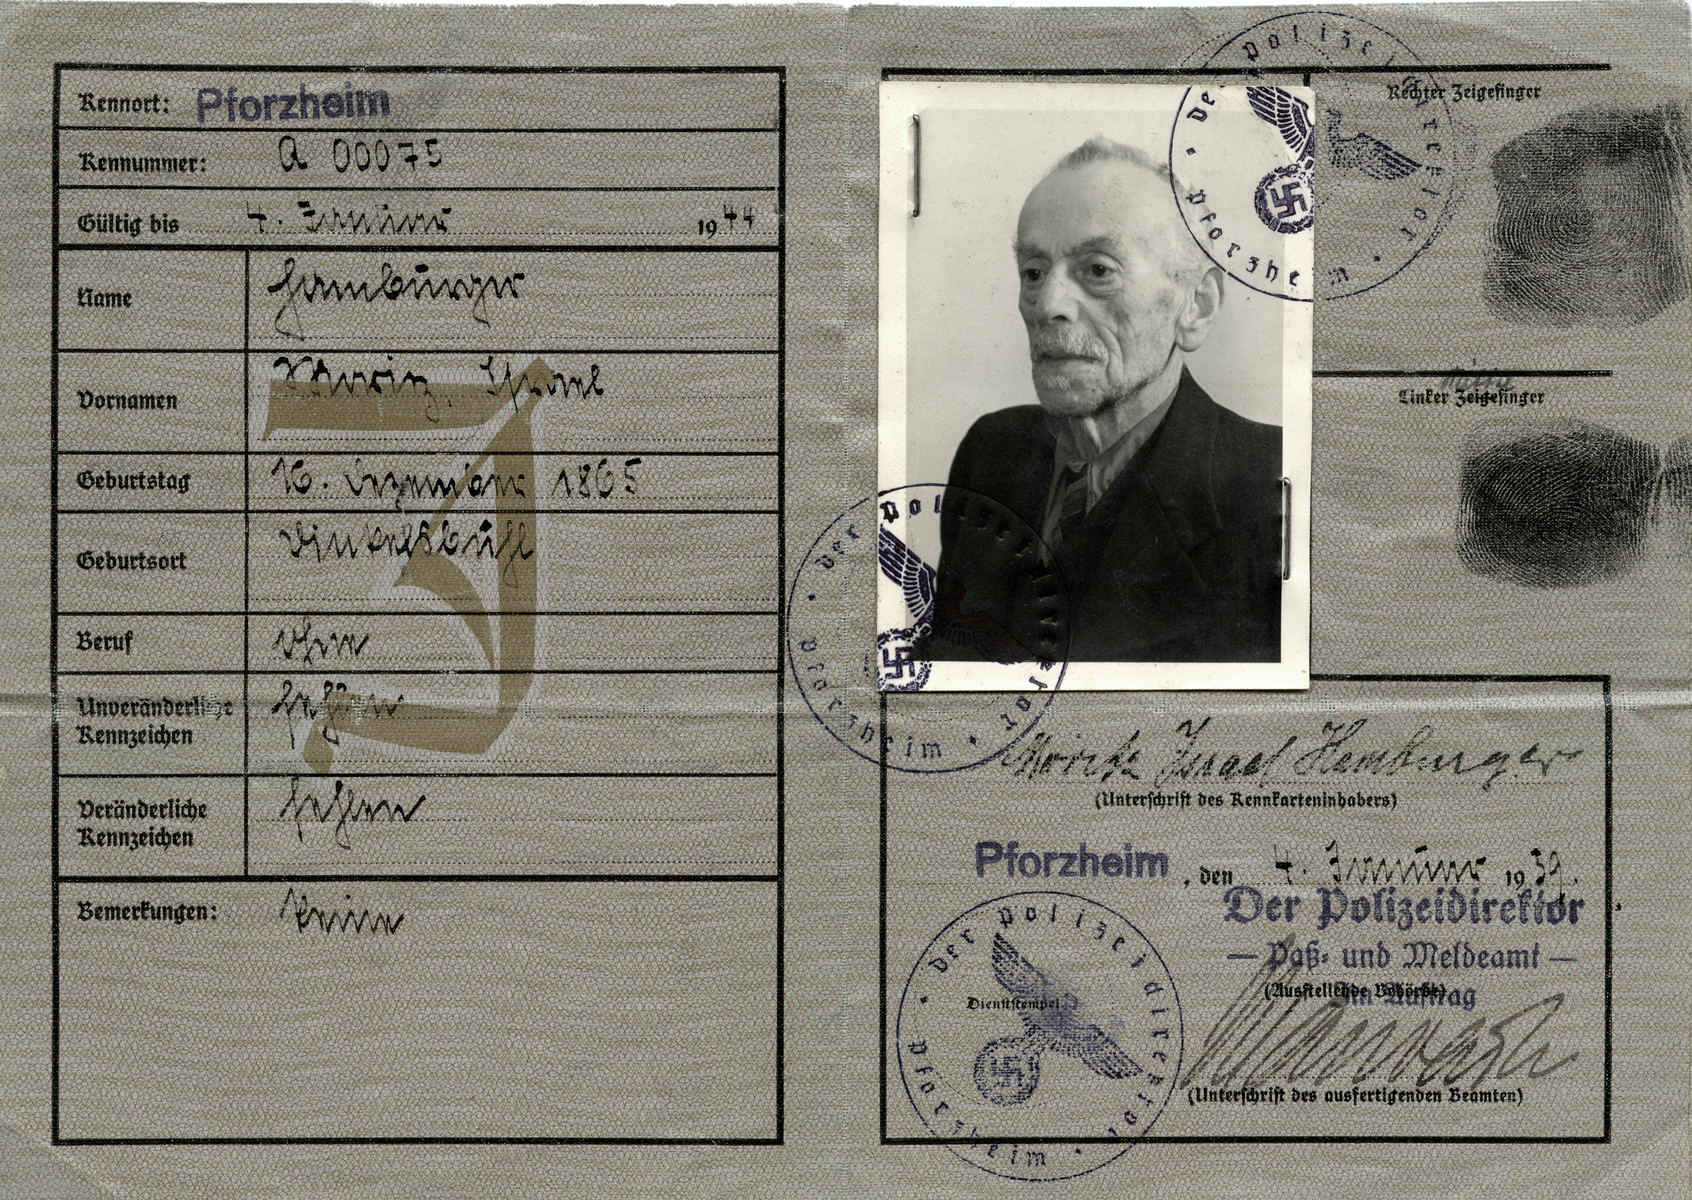 Identification card issued to Moritz Israel Hamburger.  He perished the following year in the Gurs concentration camp.